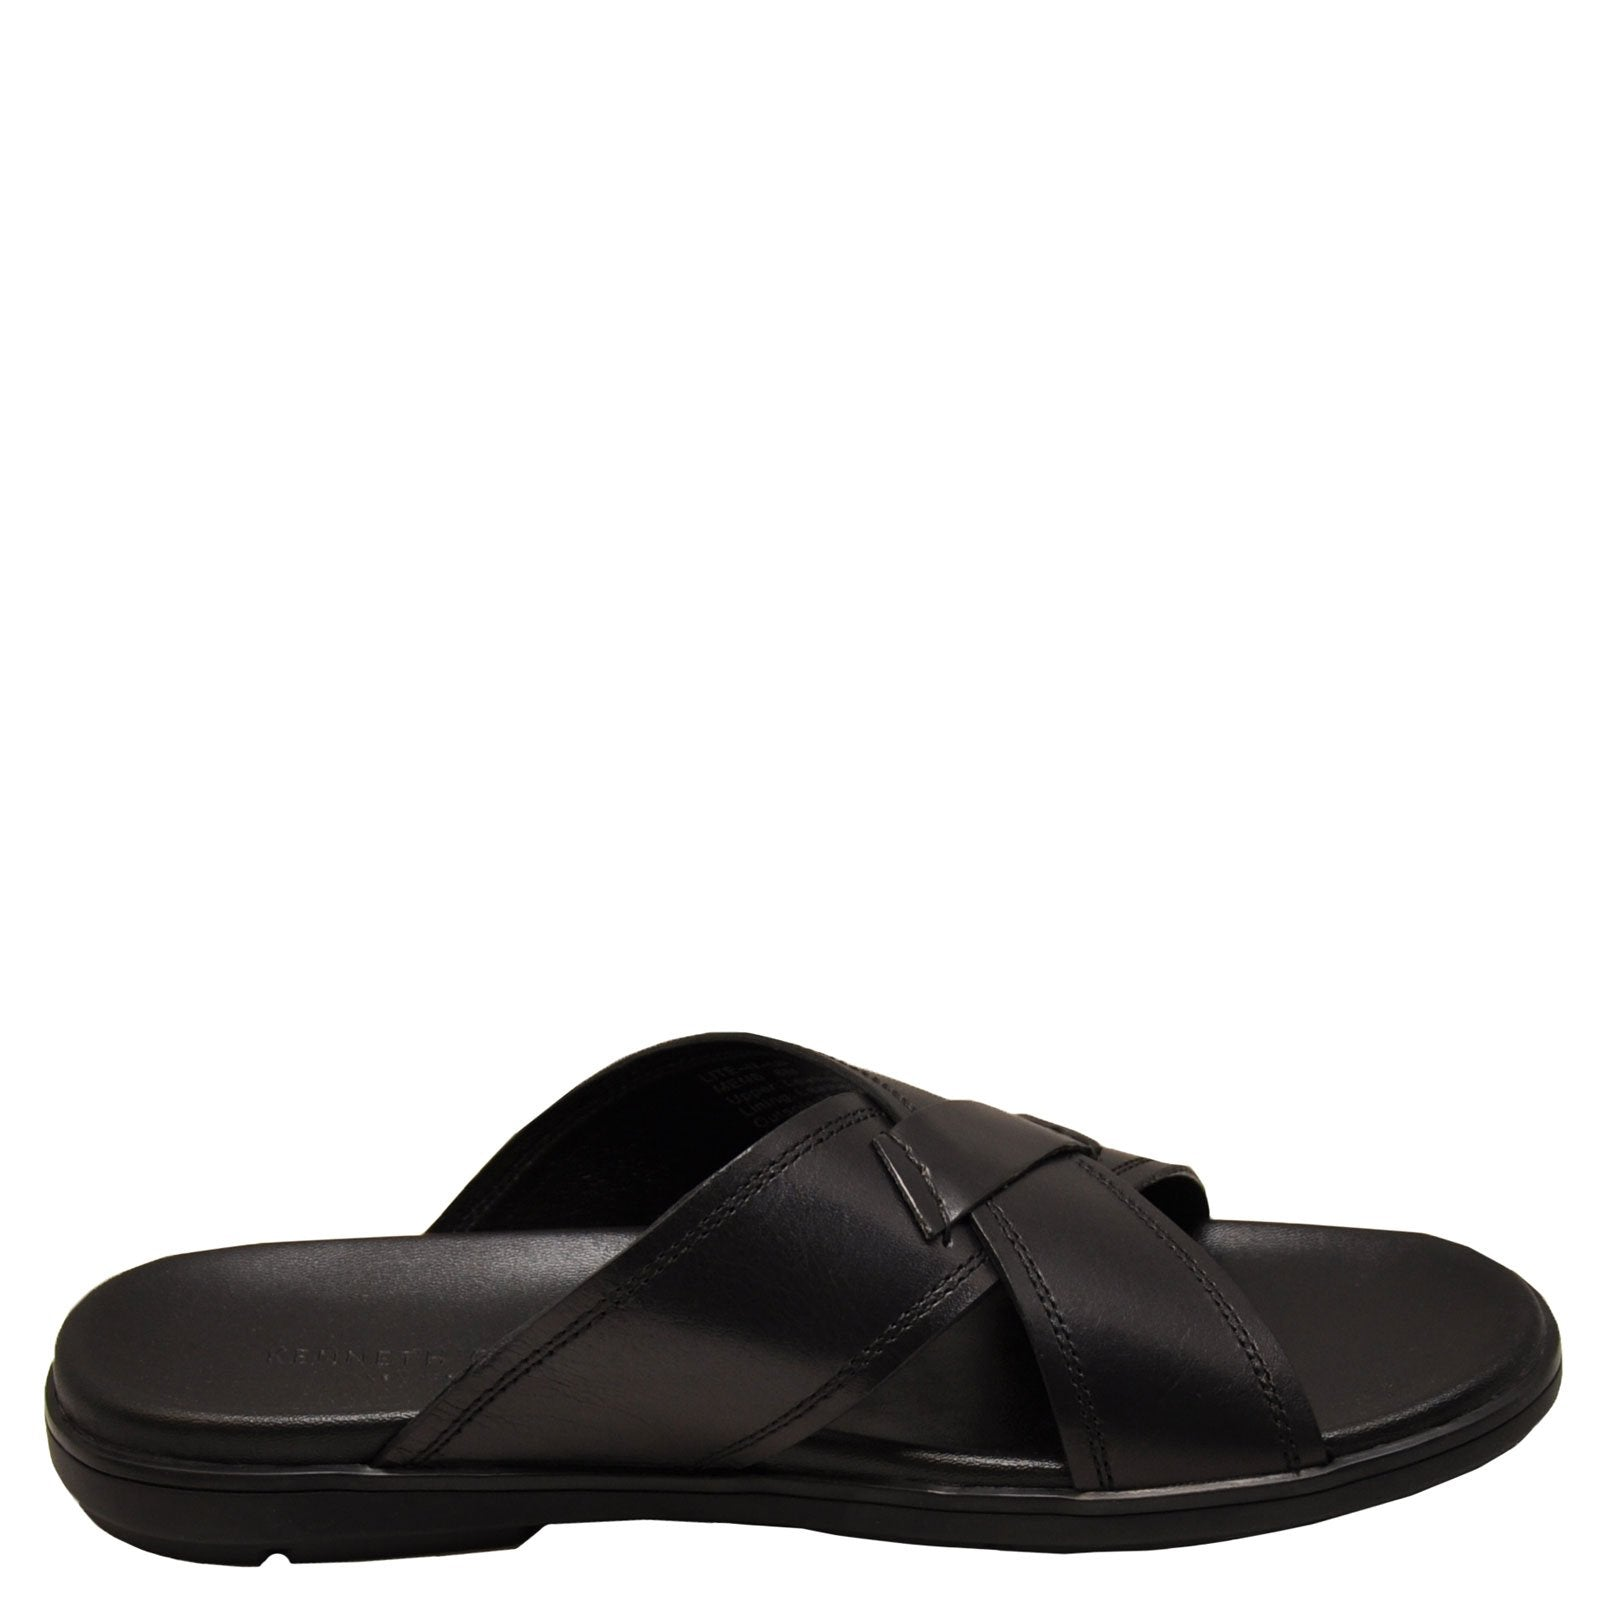 Kenneth Cole Lite N Up- Black